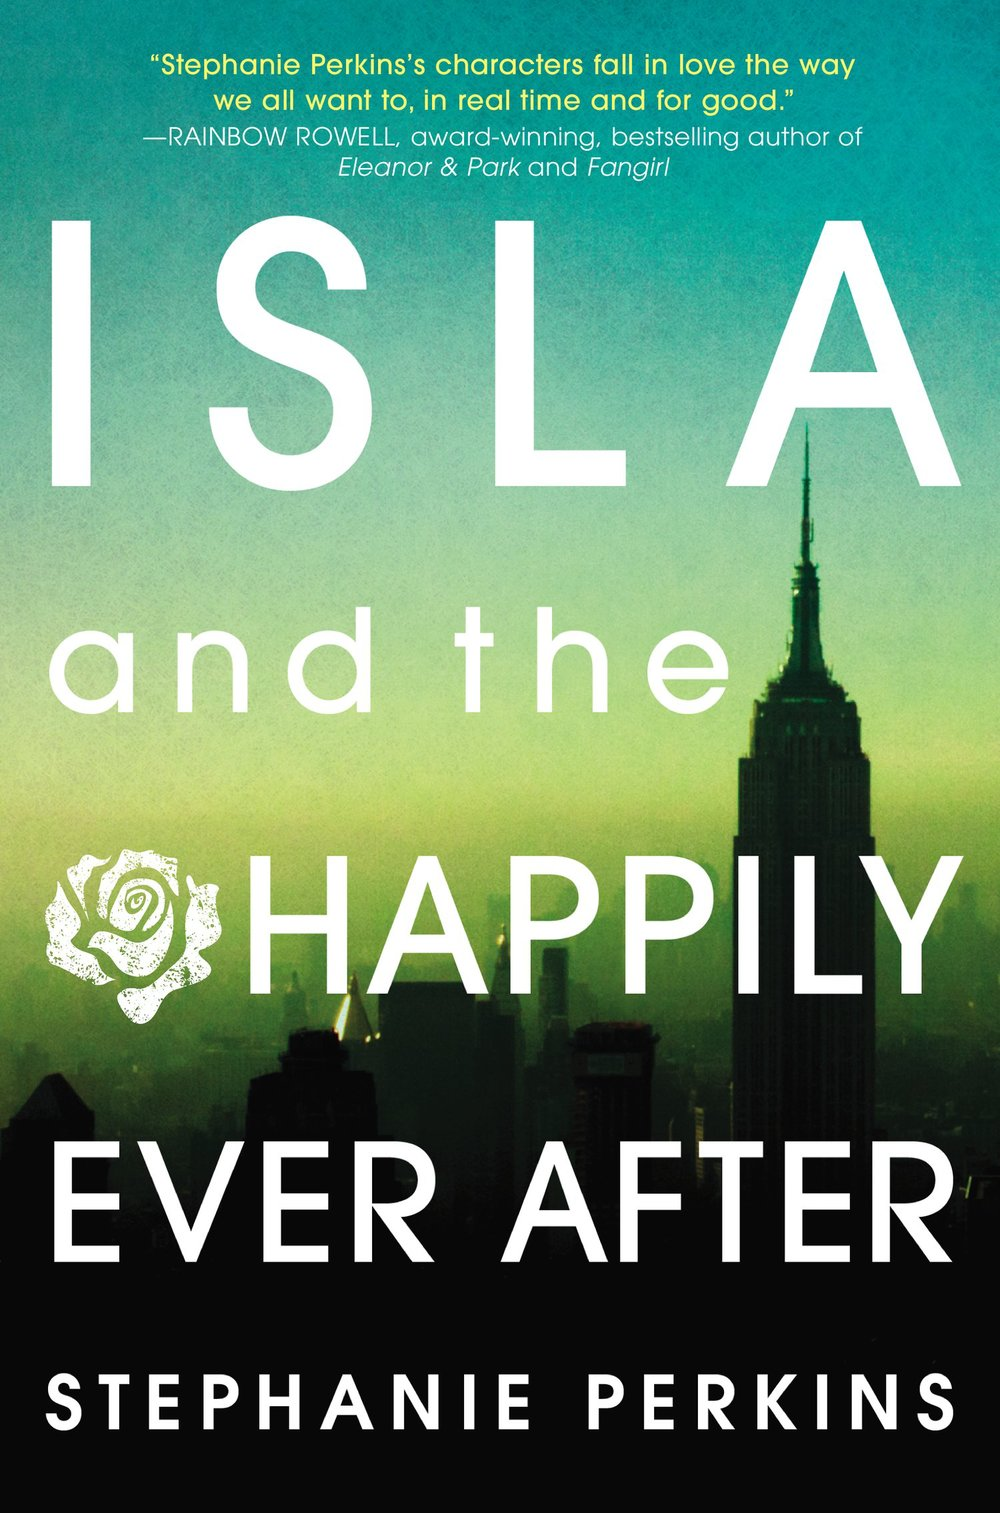 Isla & the Happily Ever After by Stephanie Perkins Amazon | Goodreads